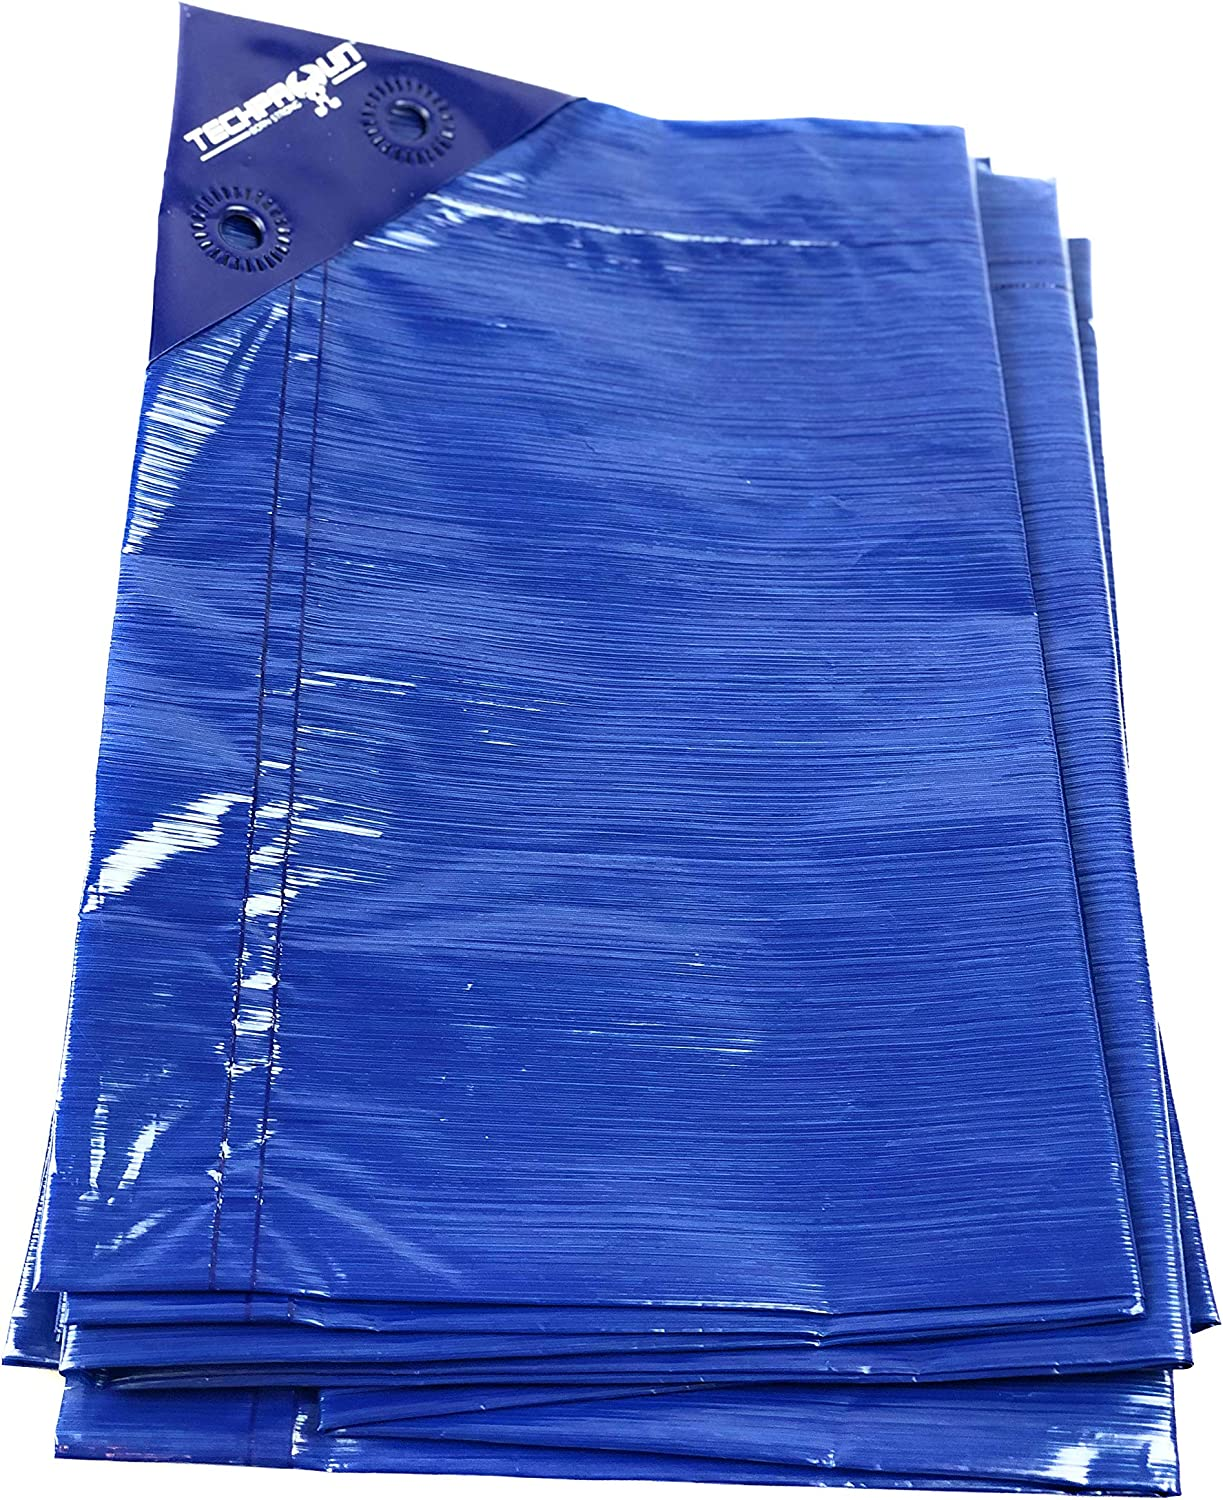 Anti-Tear Premium tarp 34 Varieties MOX Film Technology Waterproof 16x20 Heavy Duty Translucent Tarp UV Resistant